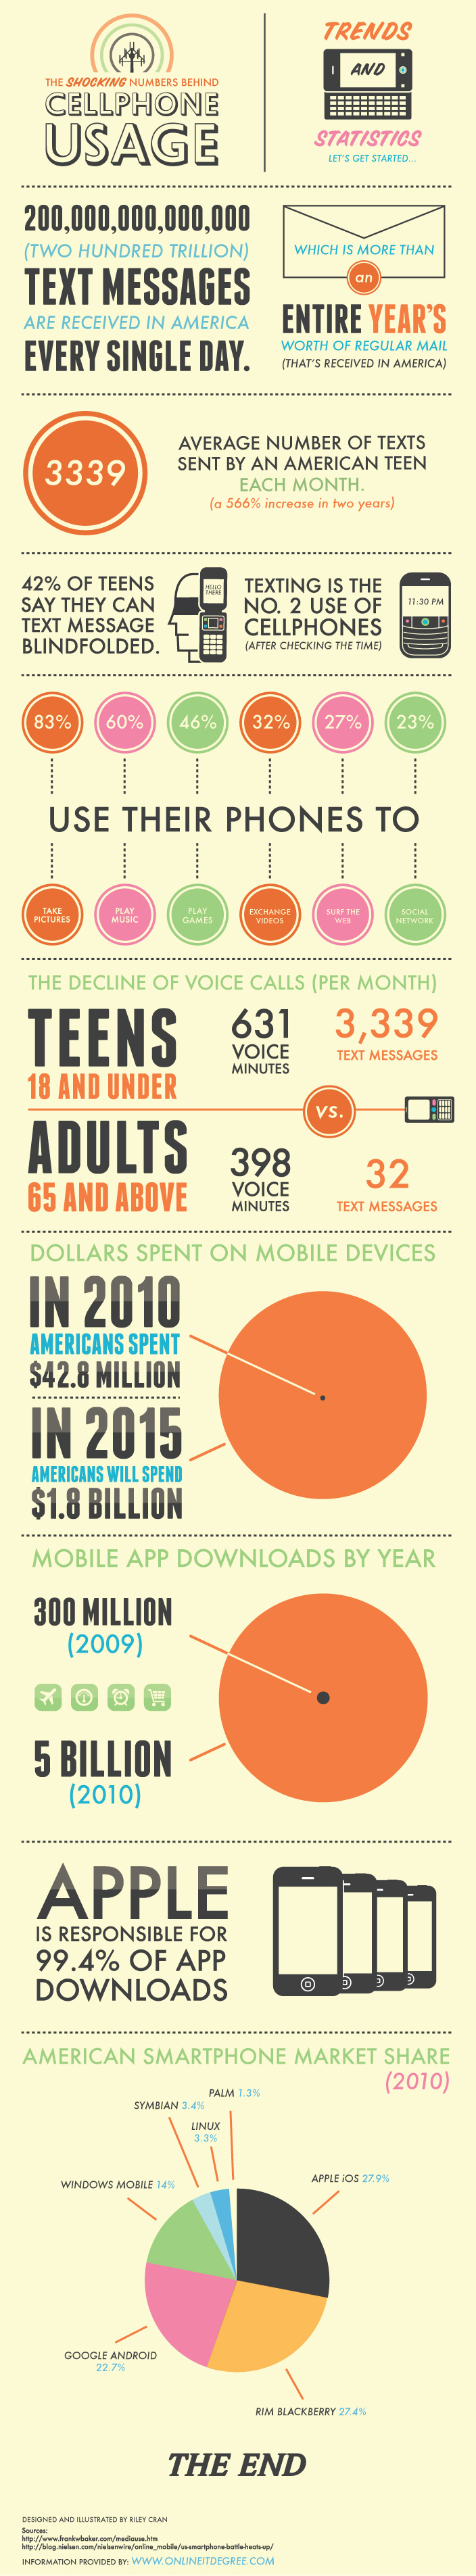 mobile phone data usage and trends